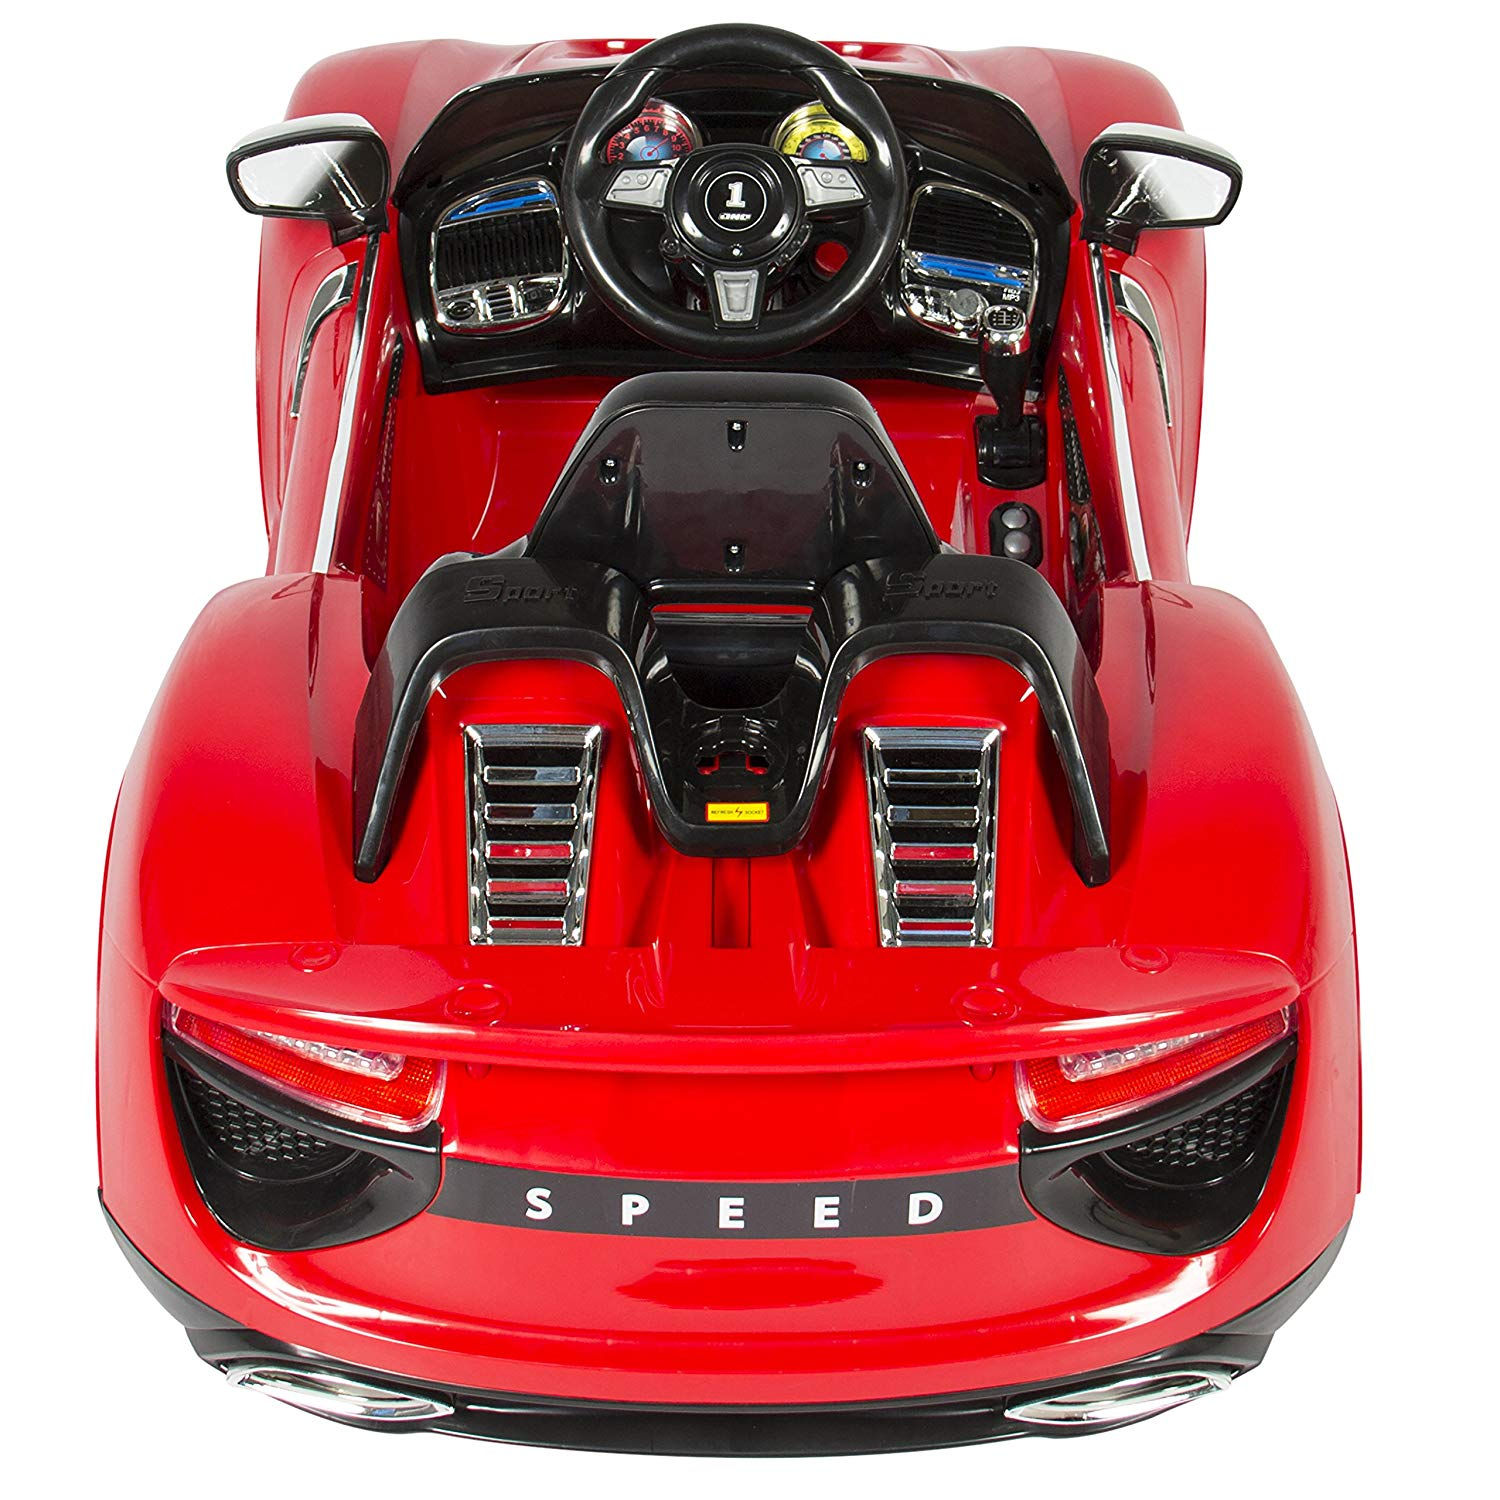 Kids Motorized Cars Unique Best Choice Products 12v Kids Battery Powered Remote